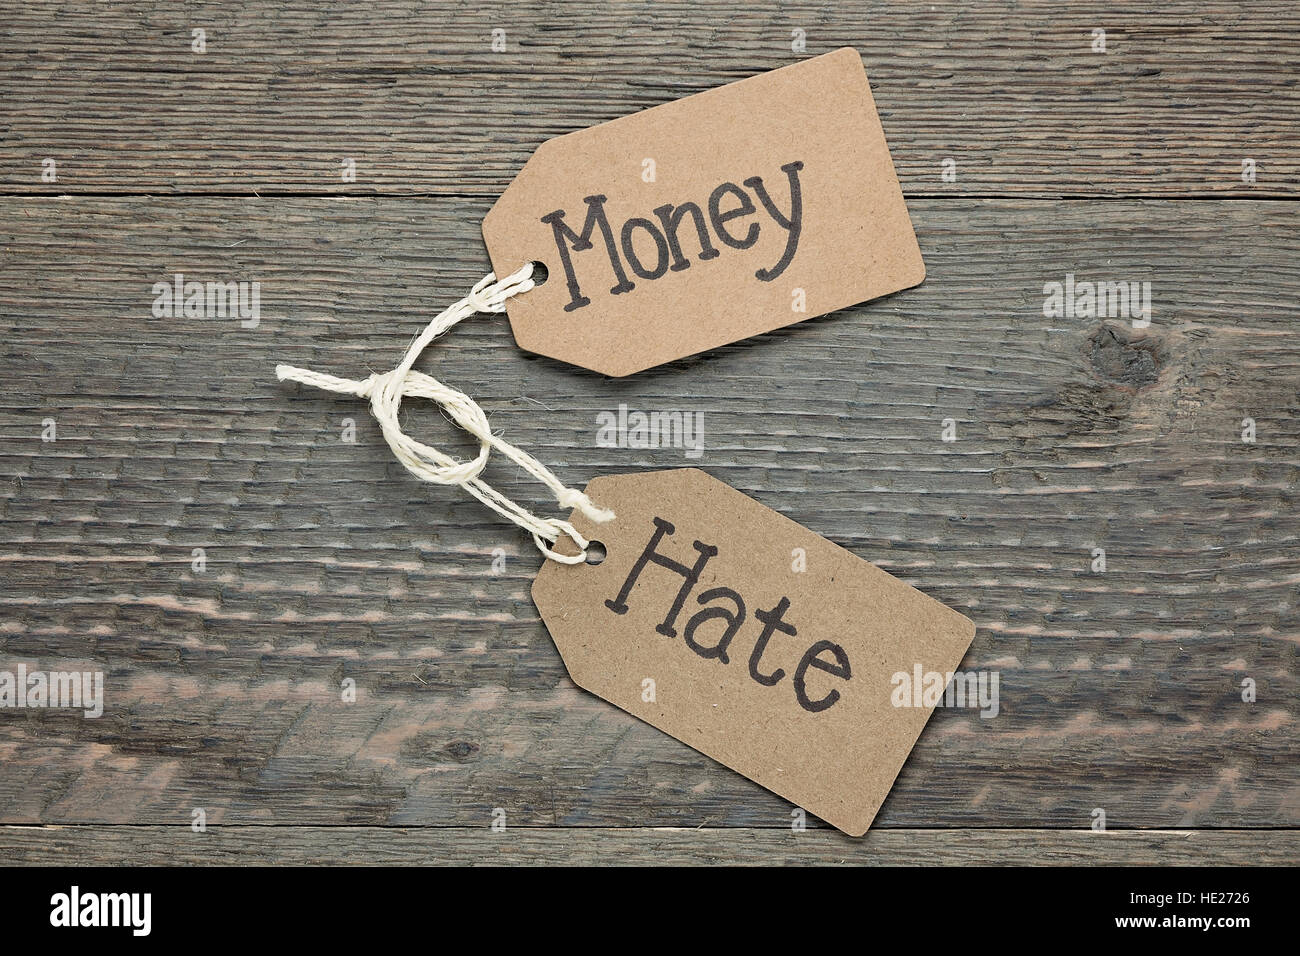 Money and Hate - Stock Image